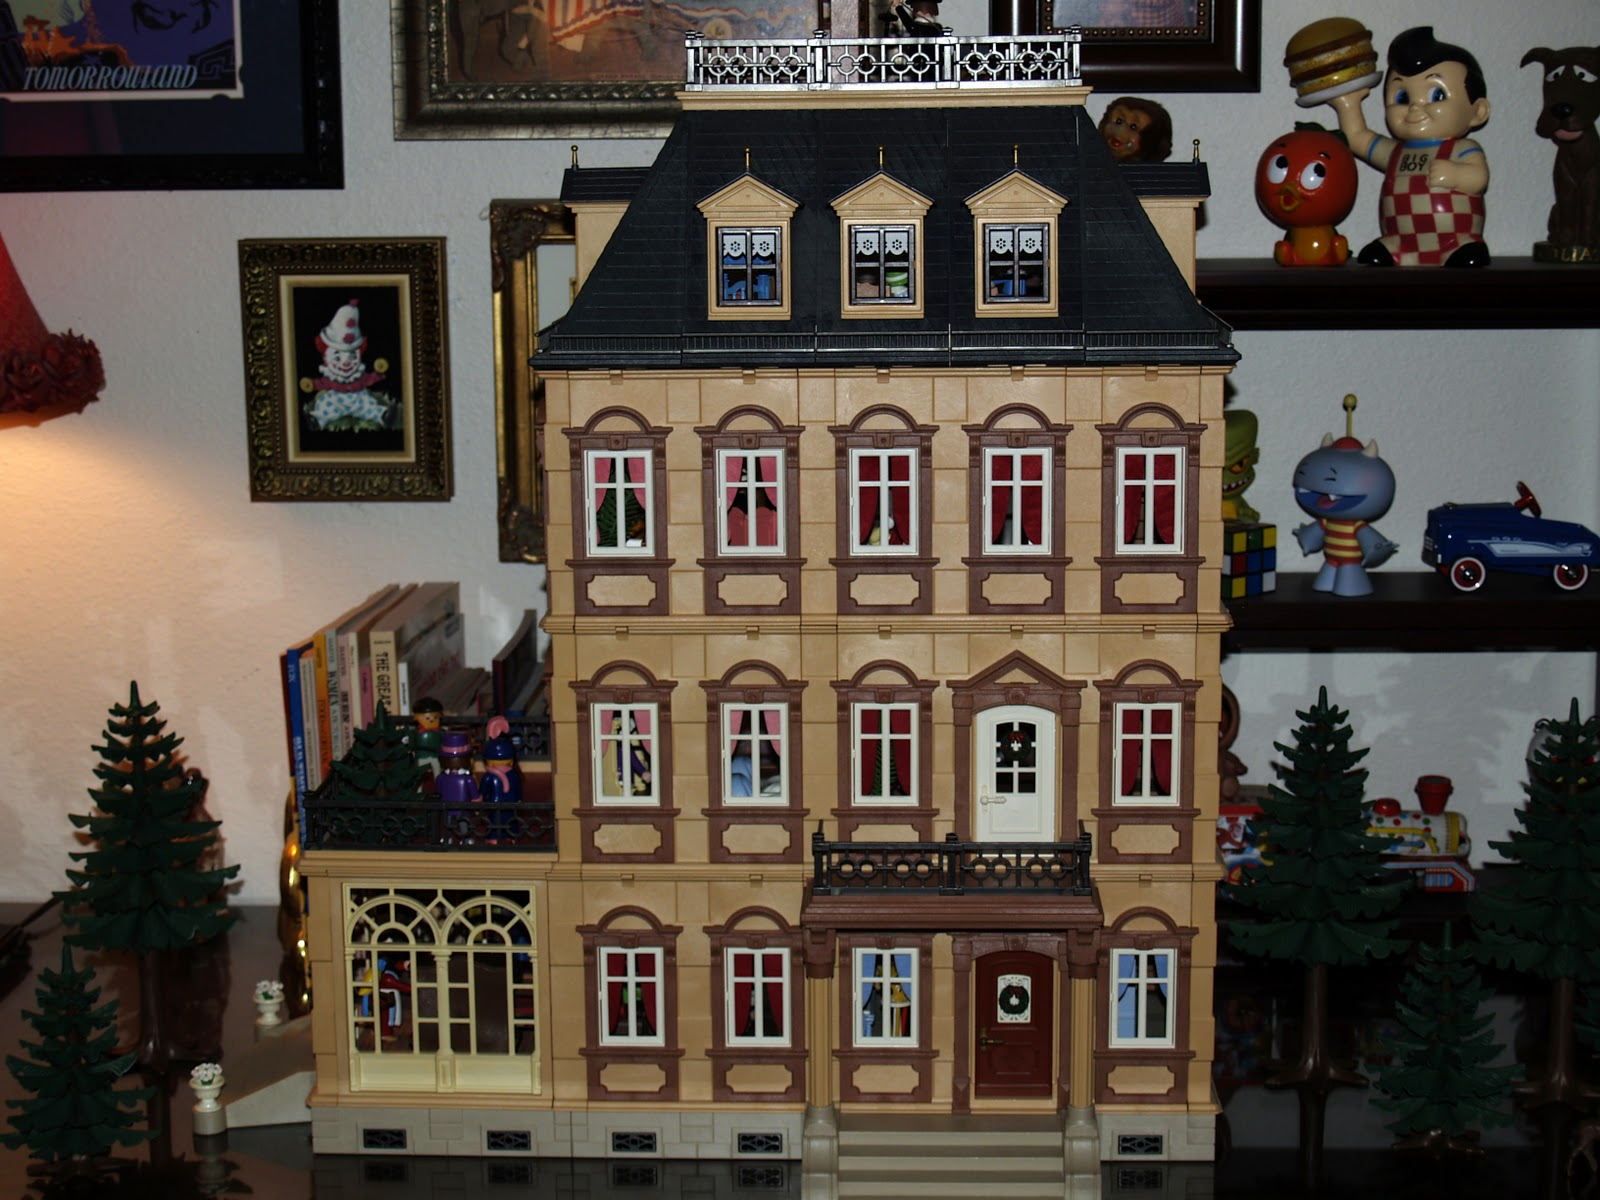 Dollhouse Playmobil Pop Circus Show Tell Our Playmobil Victorian Dollhouse A